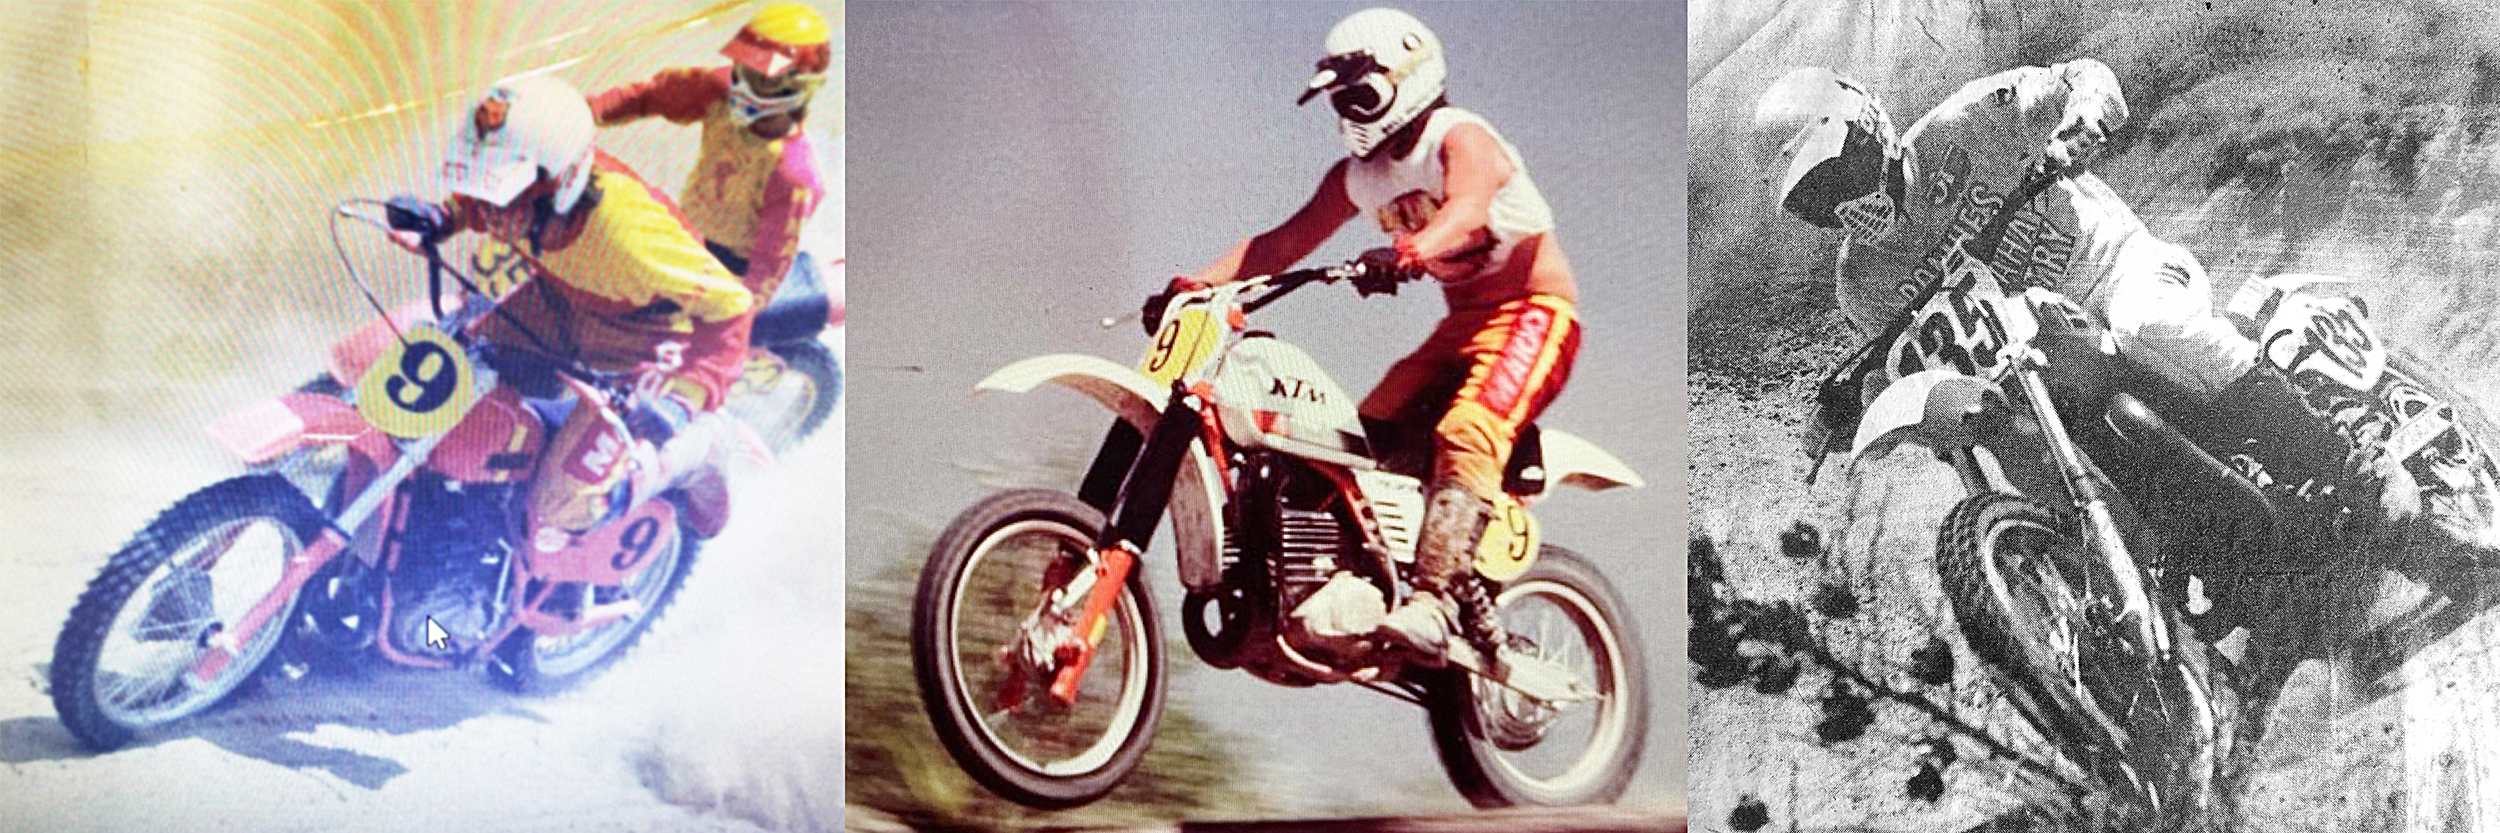 Todd Elrod racing motocross in the late 70s and 80s